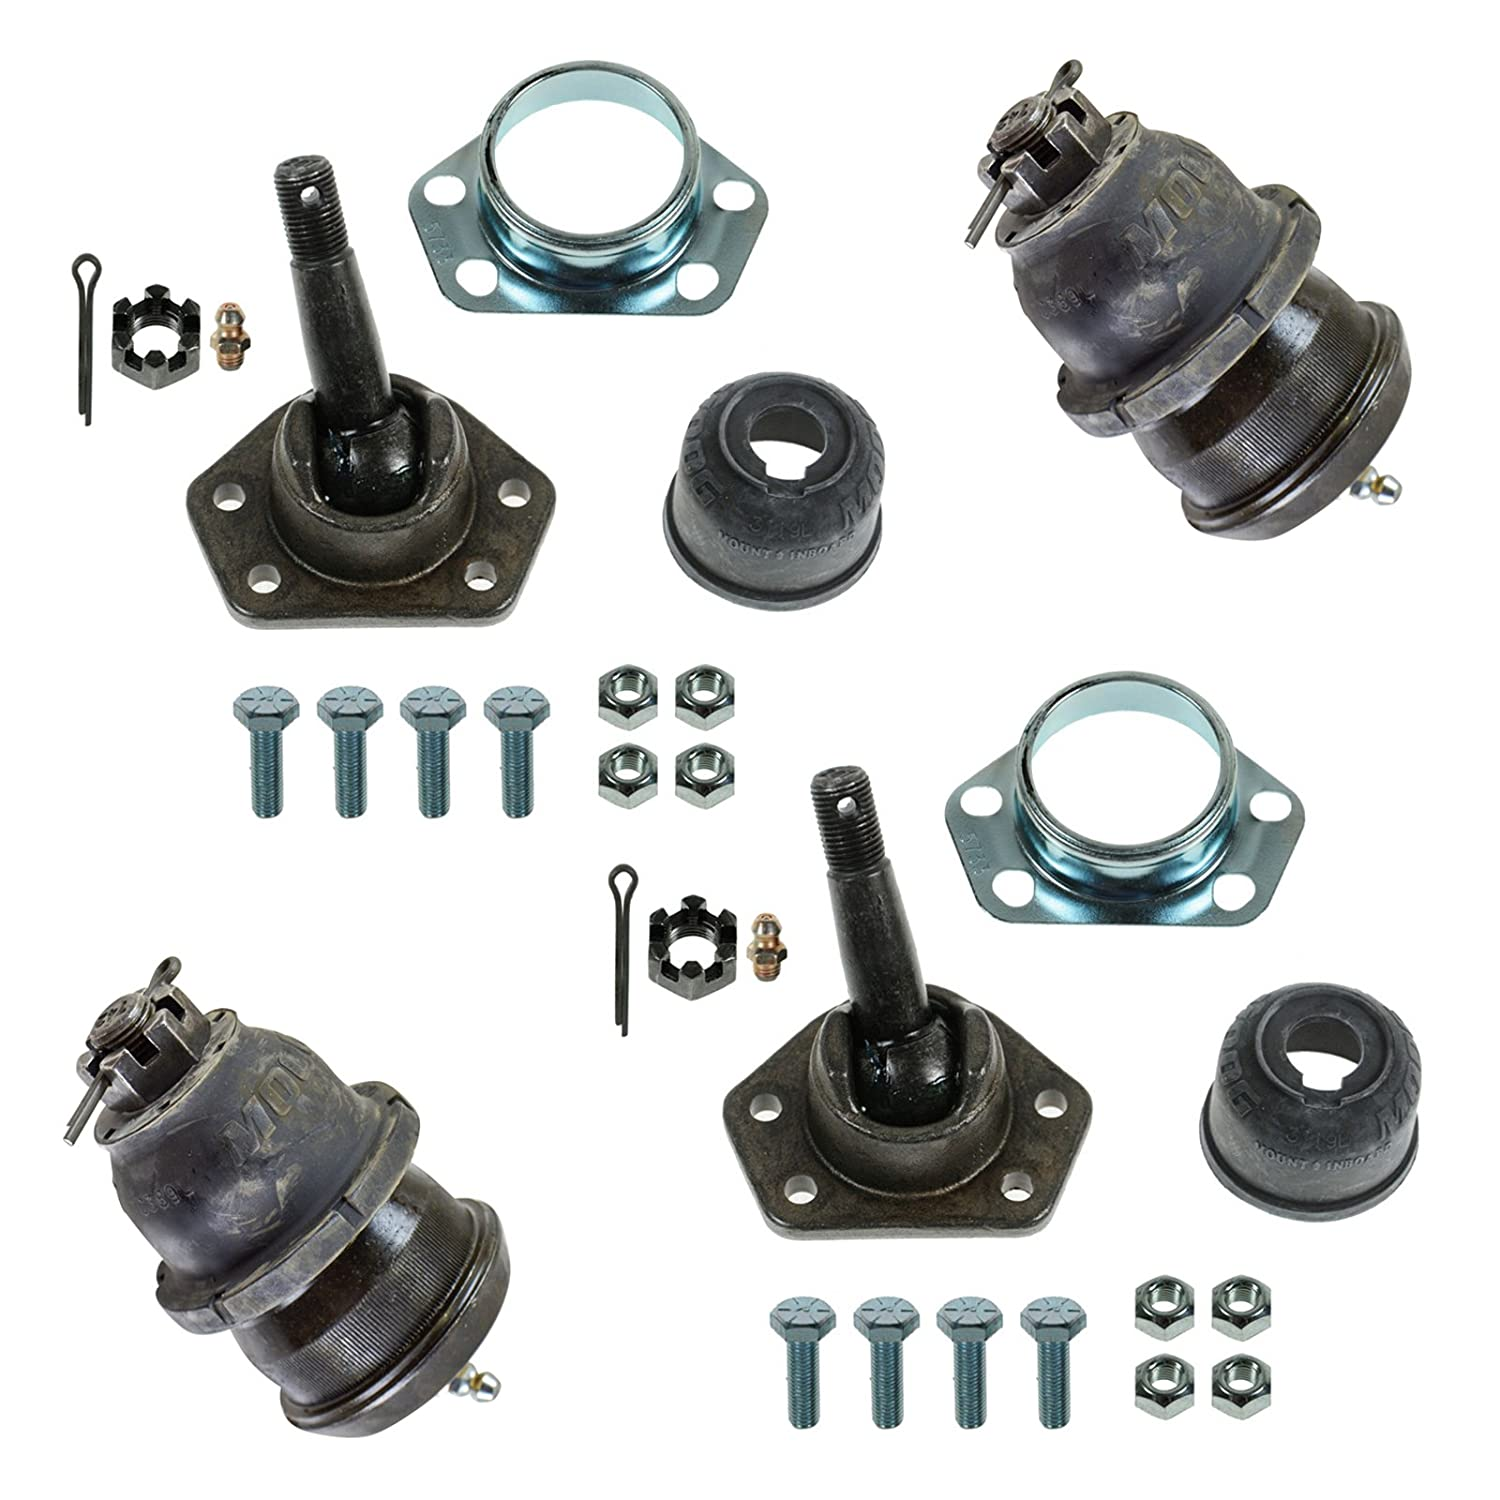 Moog K5108 K5103 Front Upper Lower Ball Joint Kit Set 4pc for Camaro GTO Cutlass 1A Auto